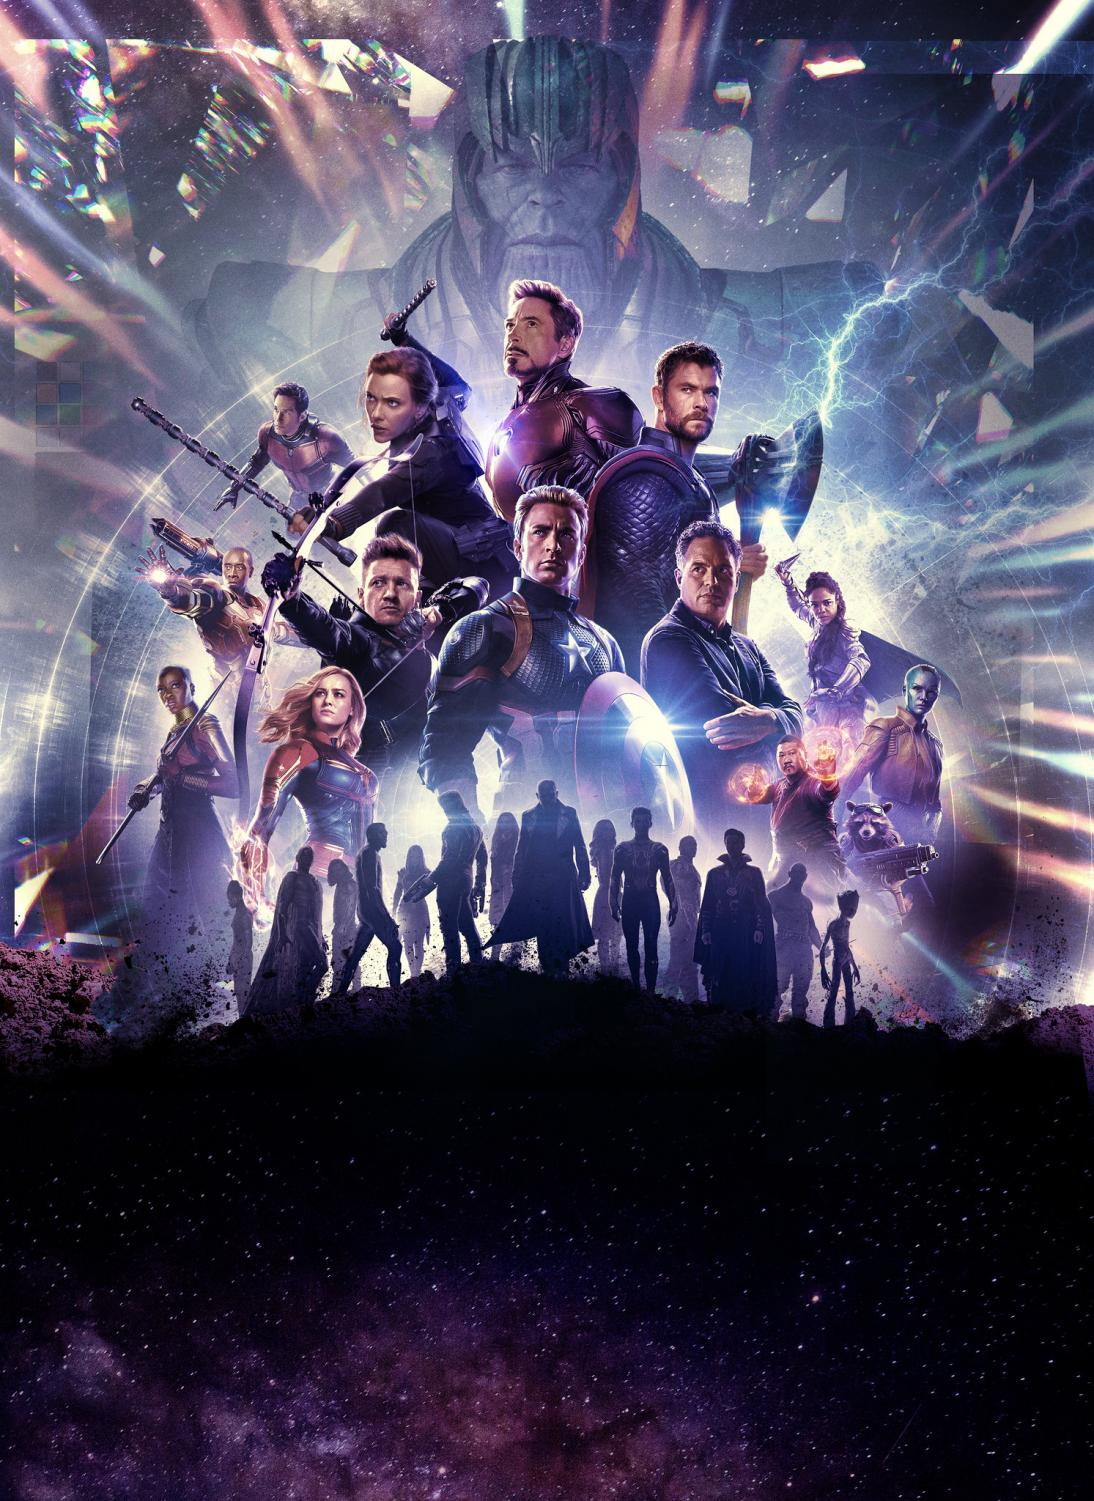 All the heroes from the last 22 films come together in